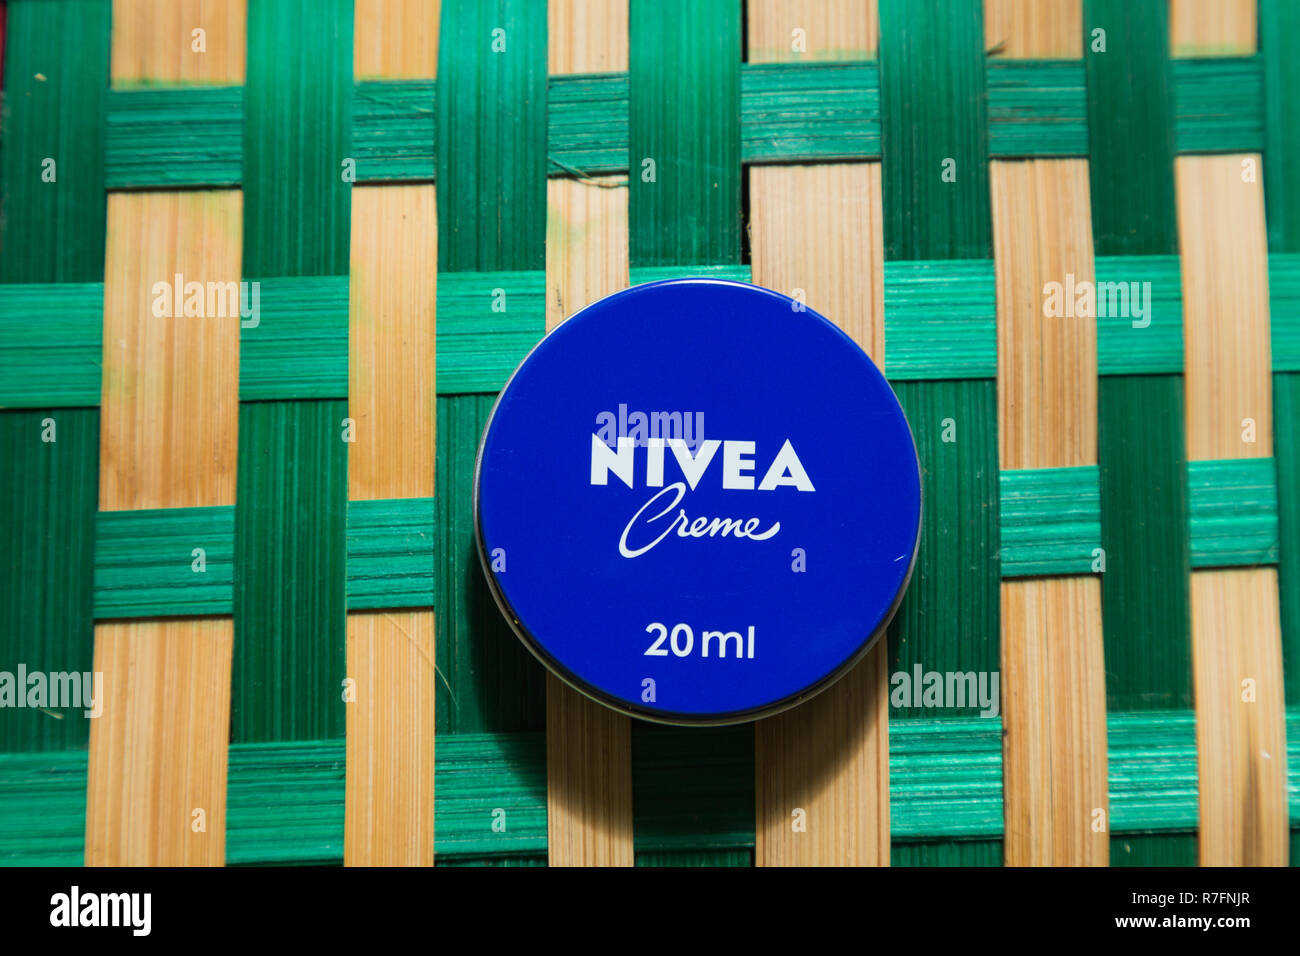 Nivea creme tin place in a green pattern background - Stock Image